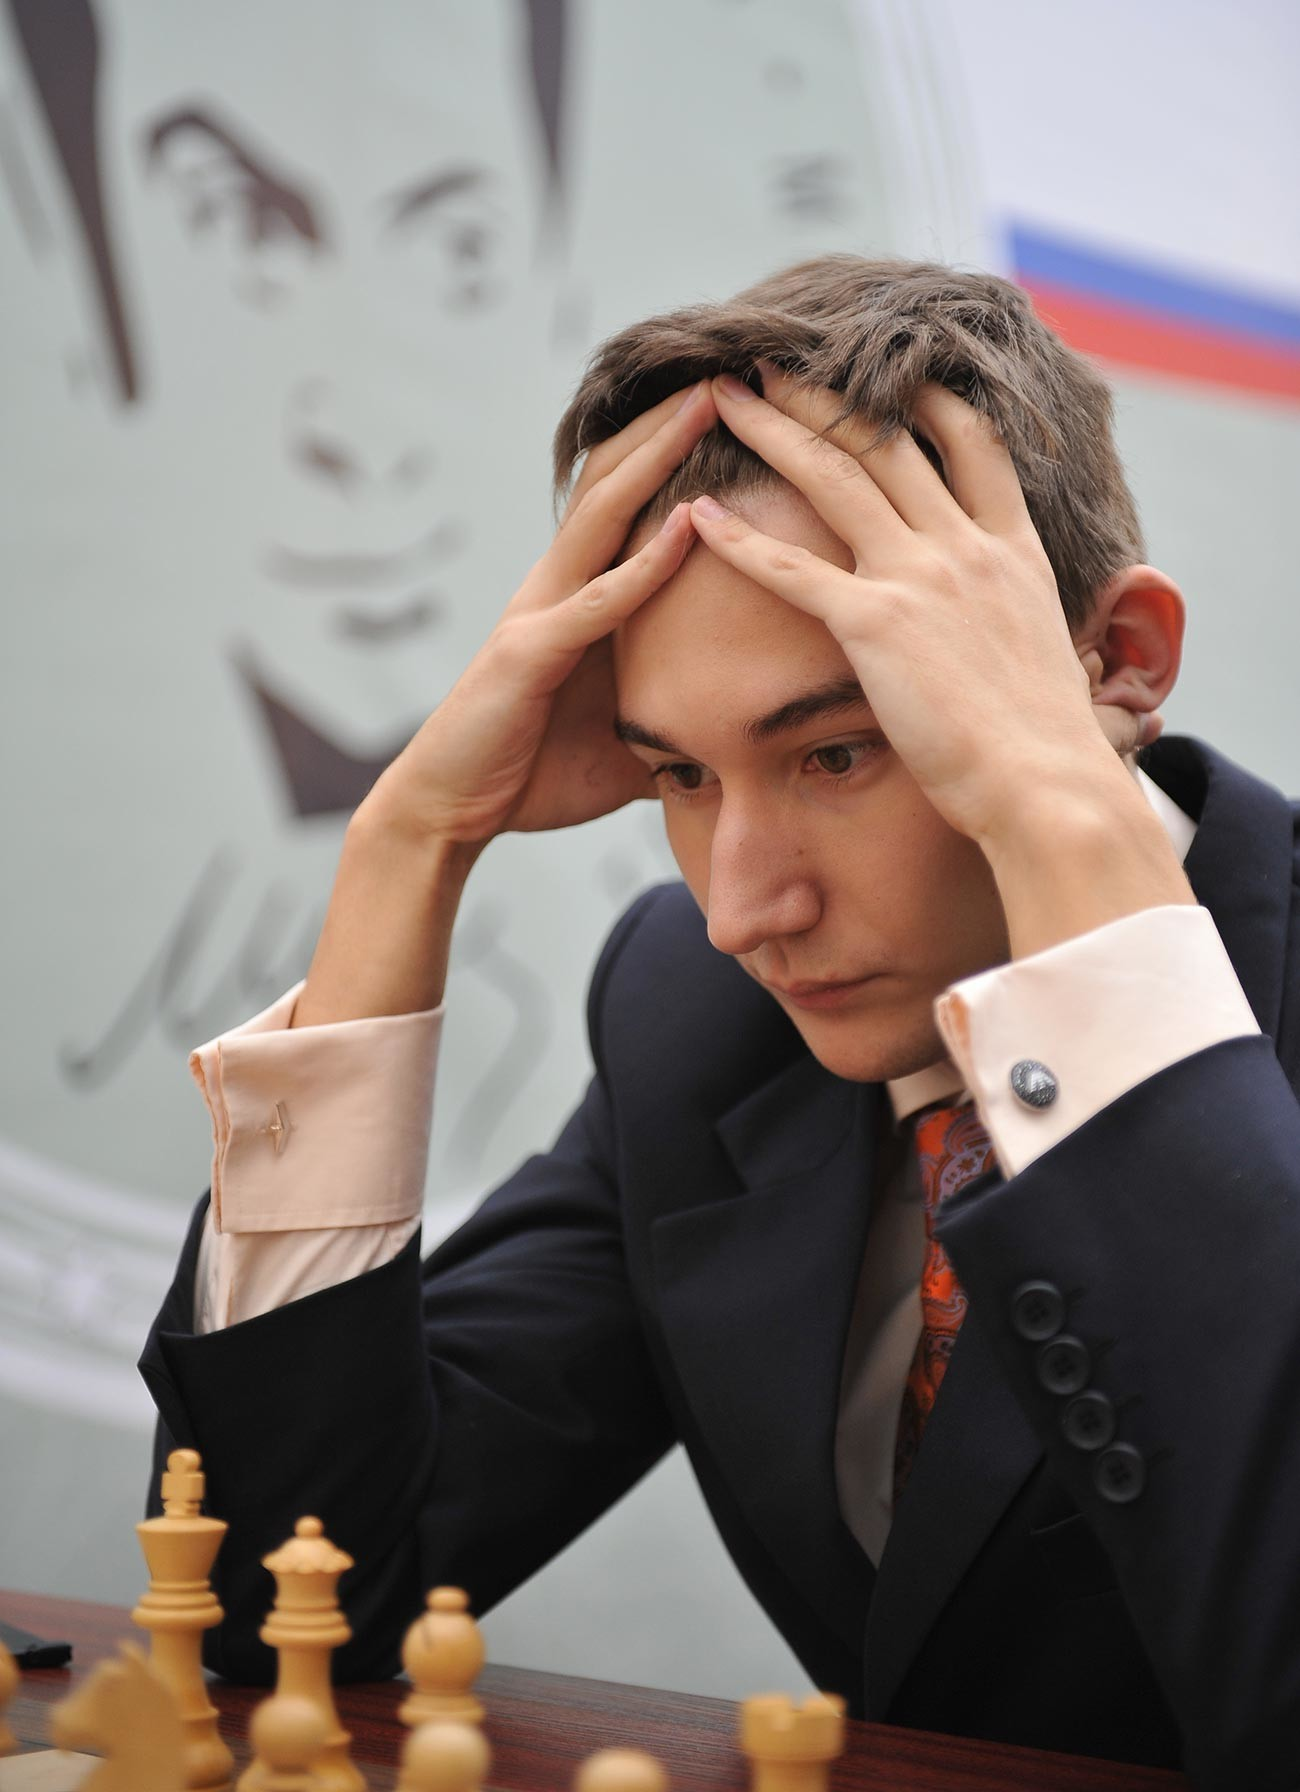 At 12, Karjakin entered the Guinness Book of World Record for becoming the youngest Grandmaster in history.